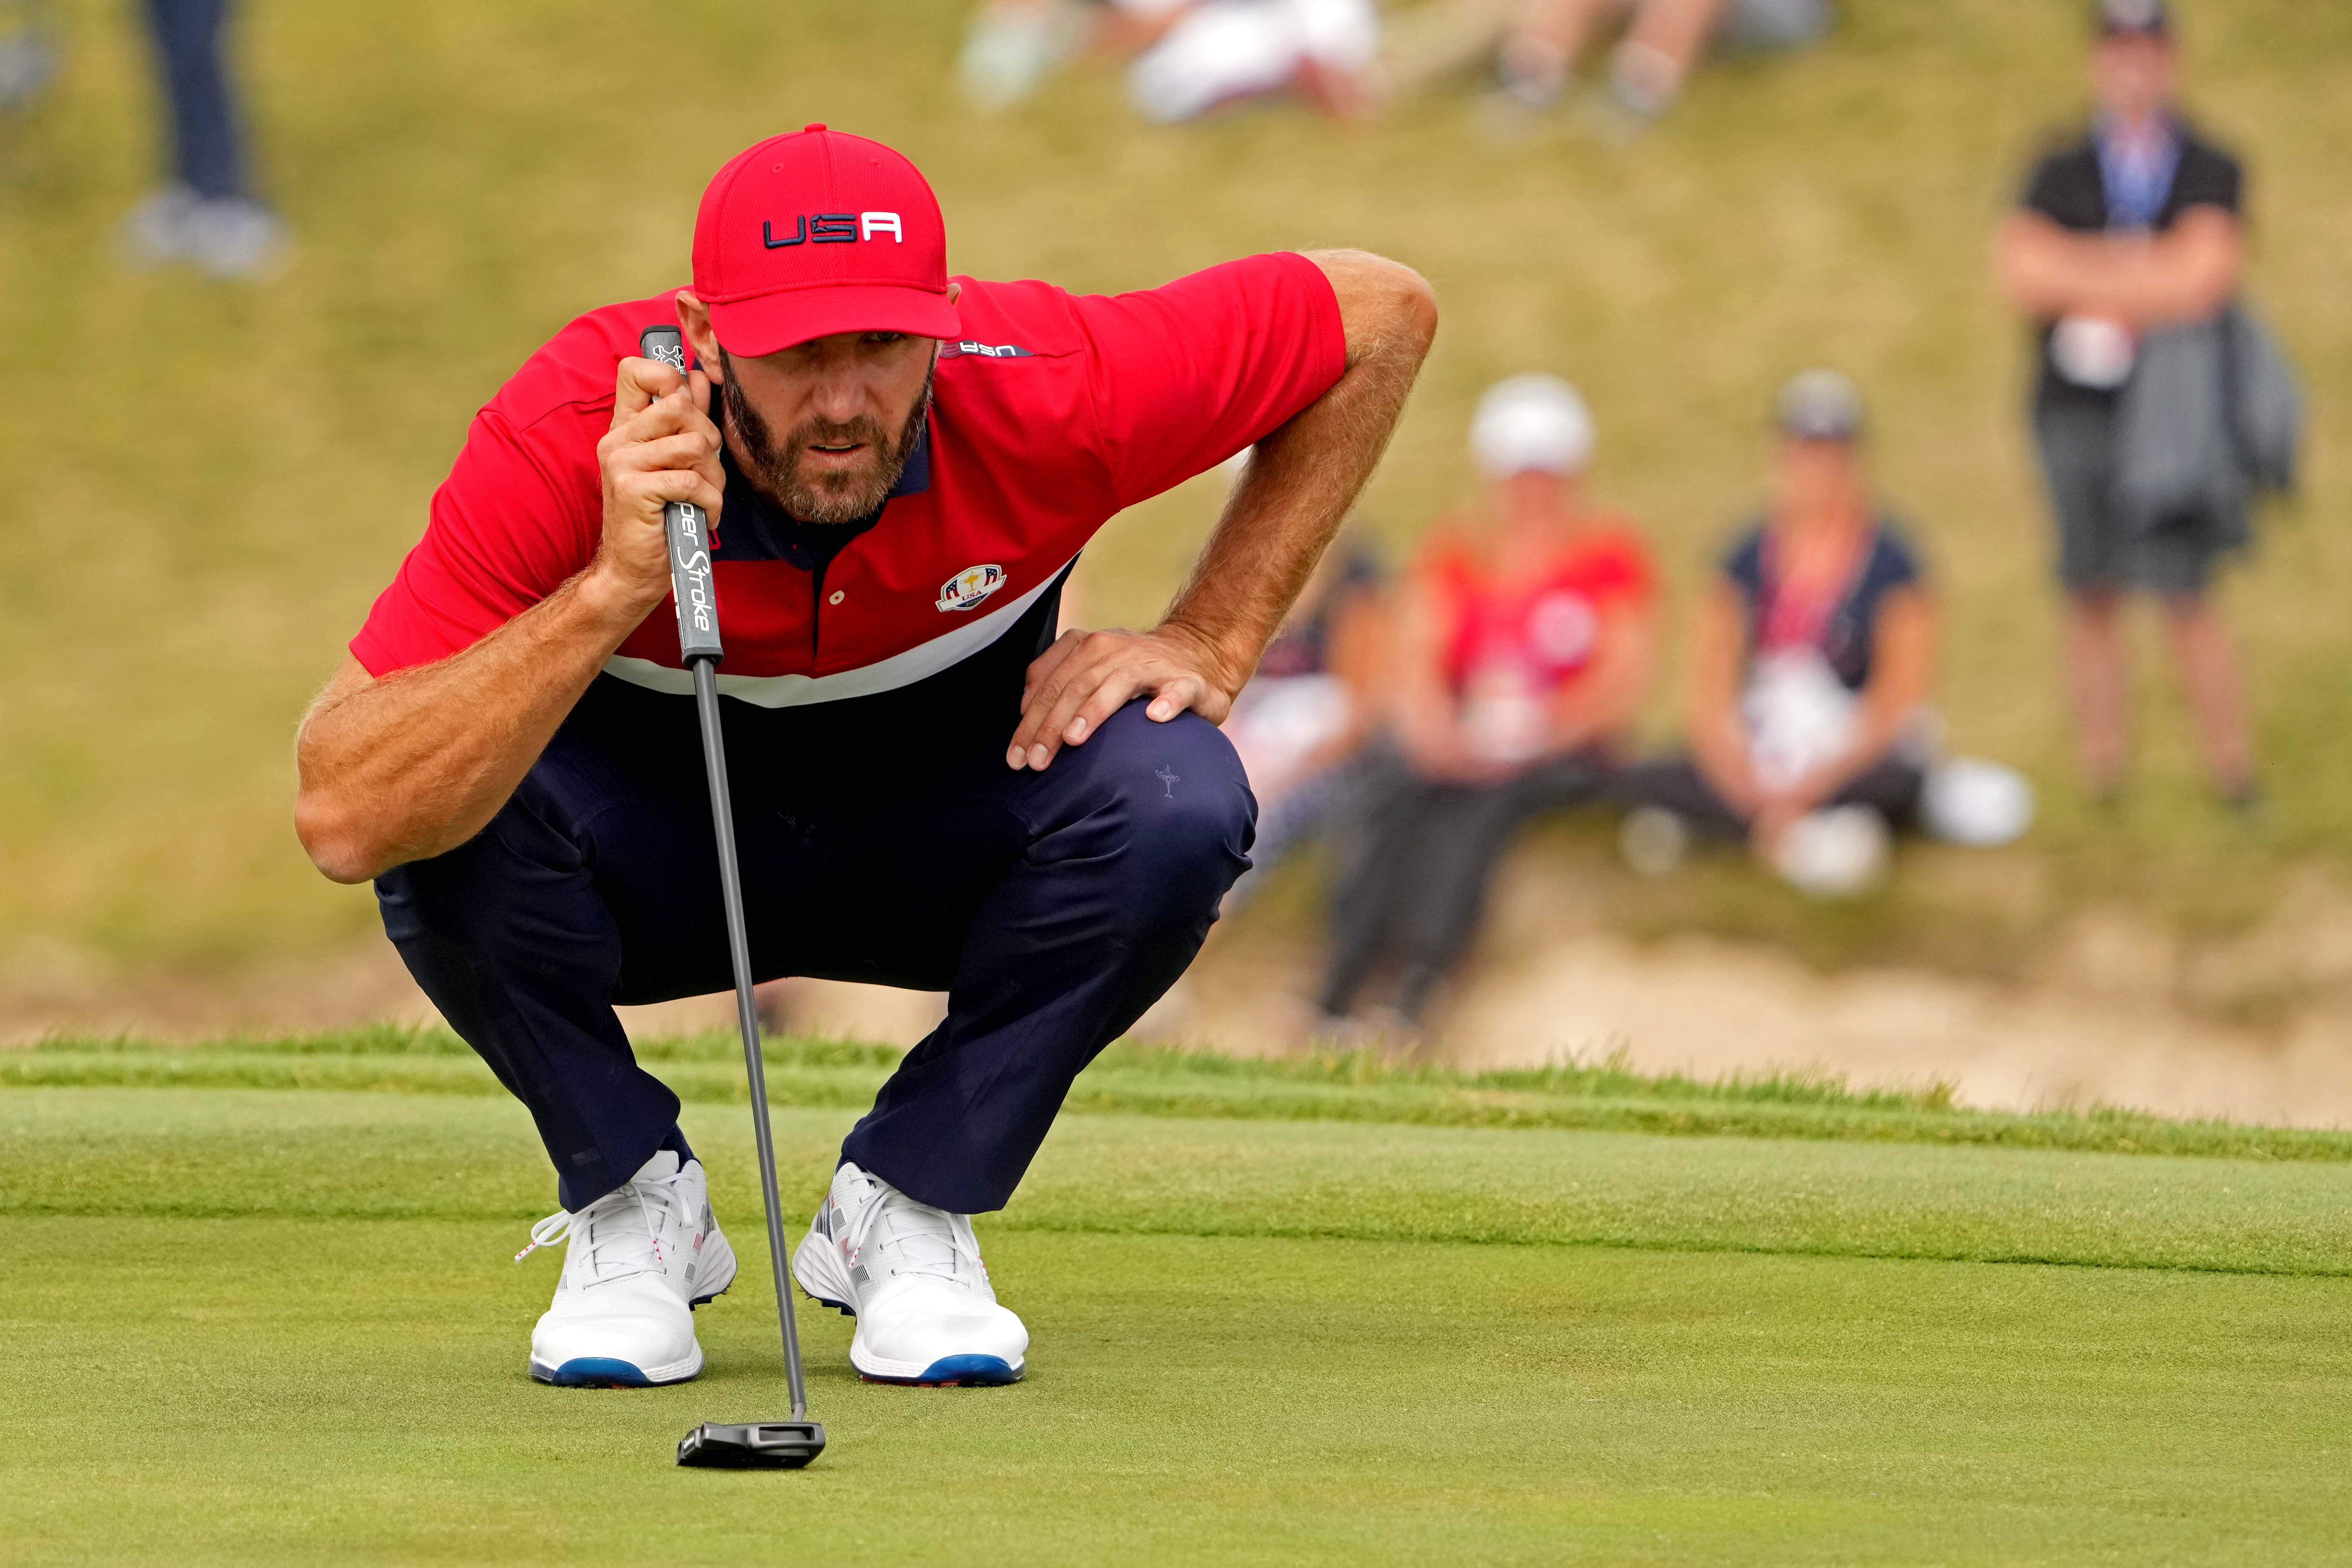 Sep 26, 2021; Haven, Wisconsin, USA; Team USA player Dustin Johnson lines up his putt on the first hole during day two four-ball rounds for the 43rd Ryder Cup golf competition at Whistling Straits. Mandatory Credit: Kyle Terada-USA TODAY Sports